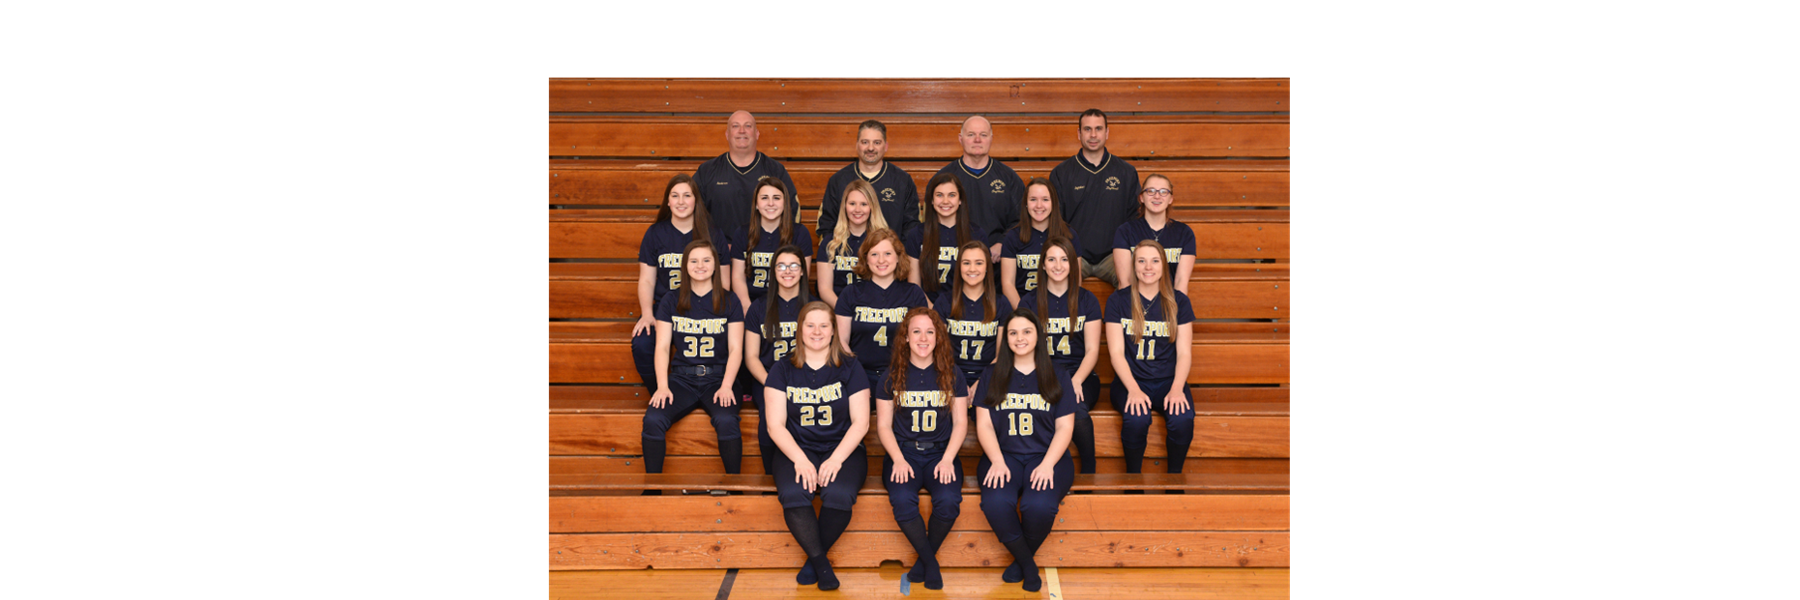 Home small freeport area. Softball clipart volleyball